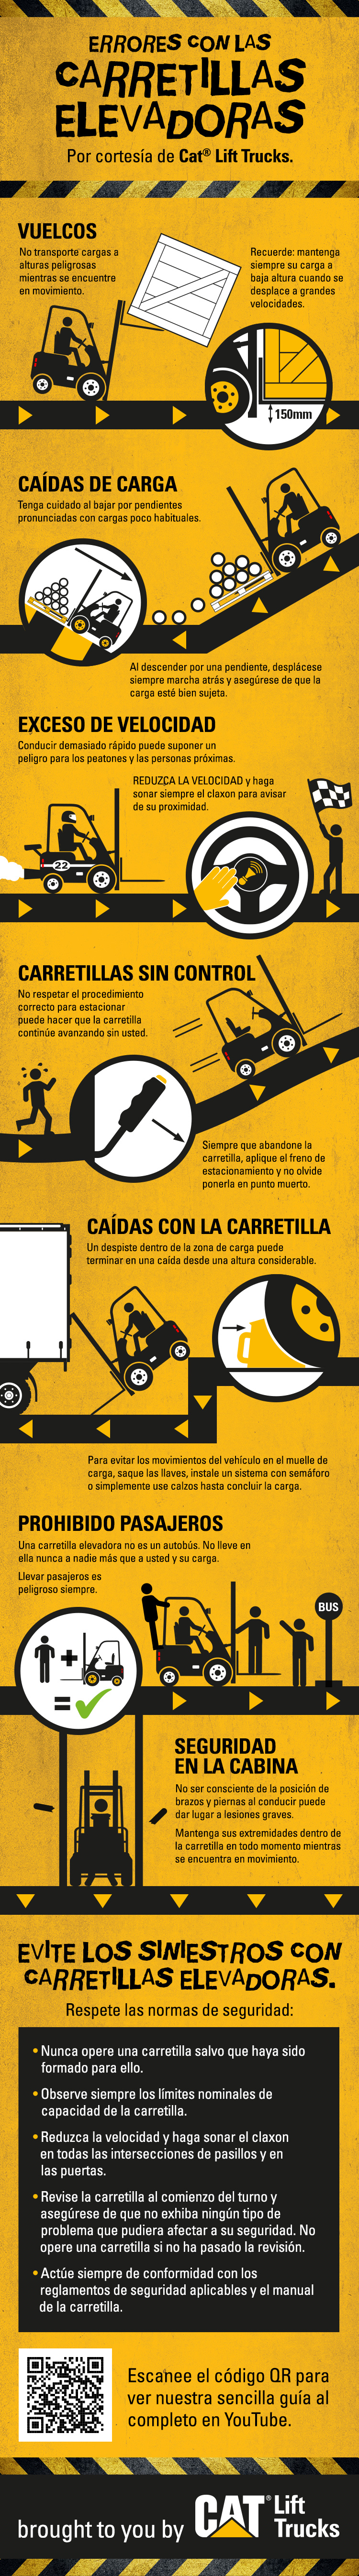 Lift-Truck-Mistakes_online-infographic_1_ES